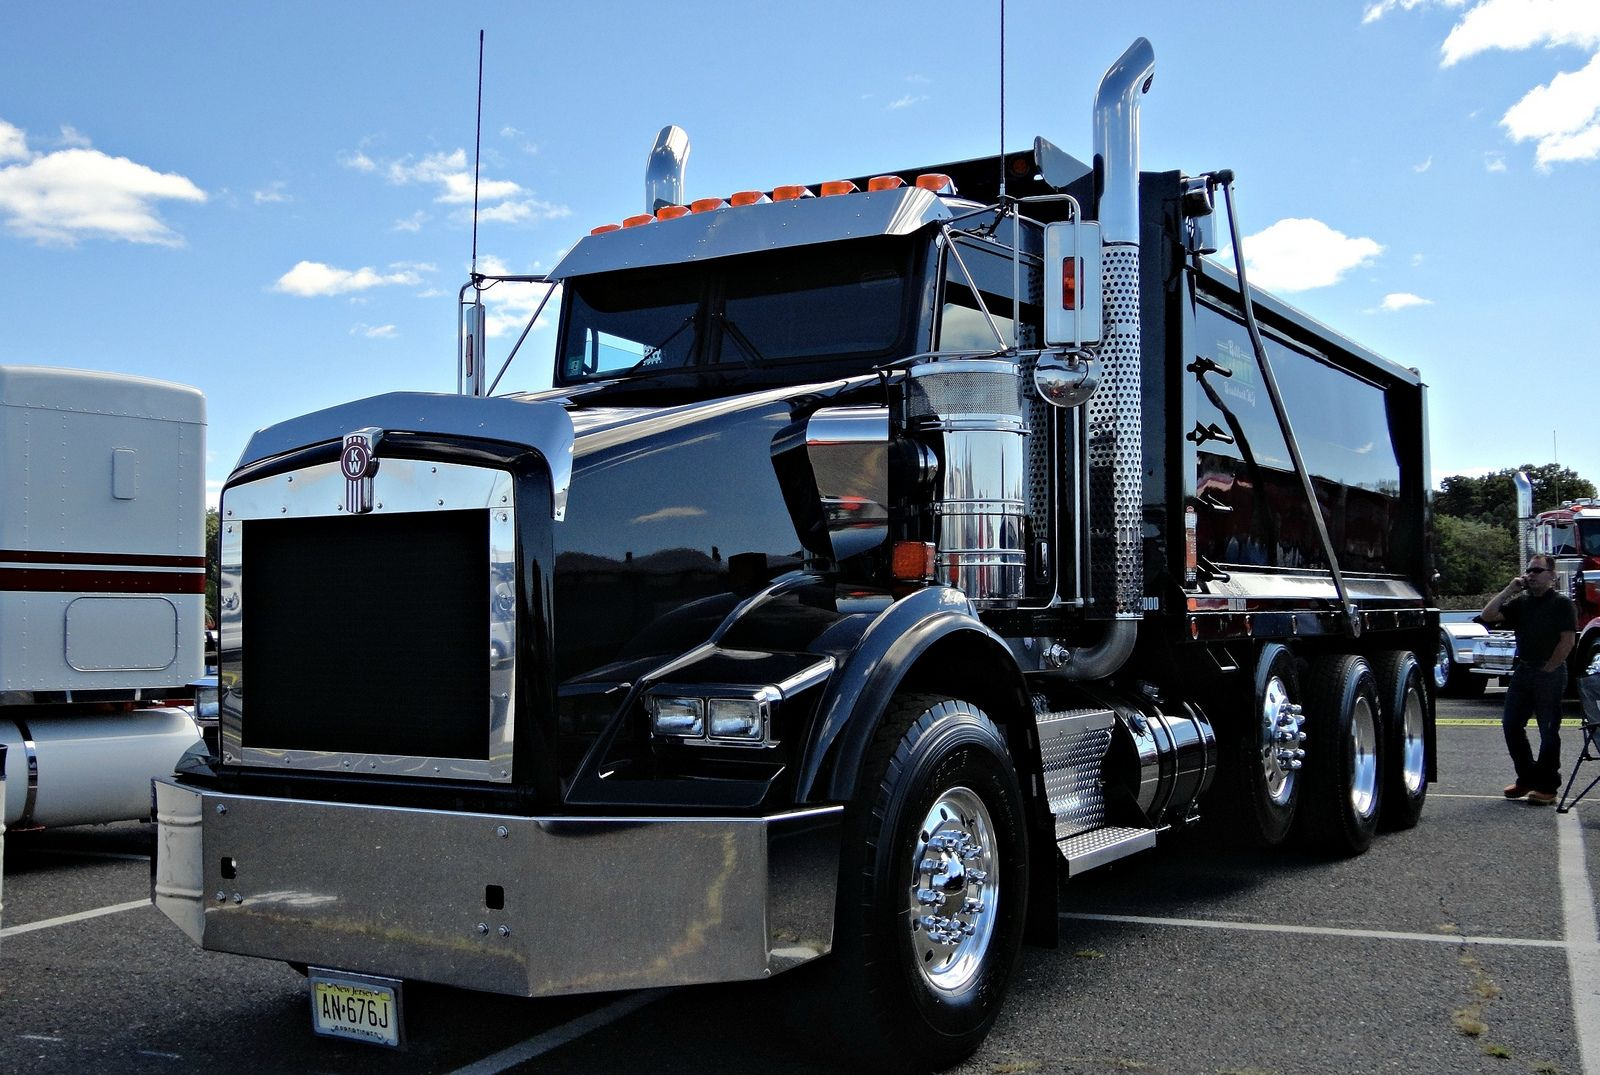 Nice Kenworth 10 wheeler dump truck. | Tandems and end ...Kenworth Dump Trucks